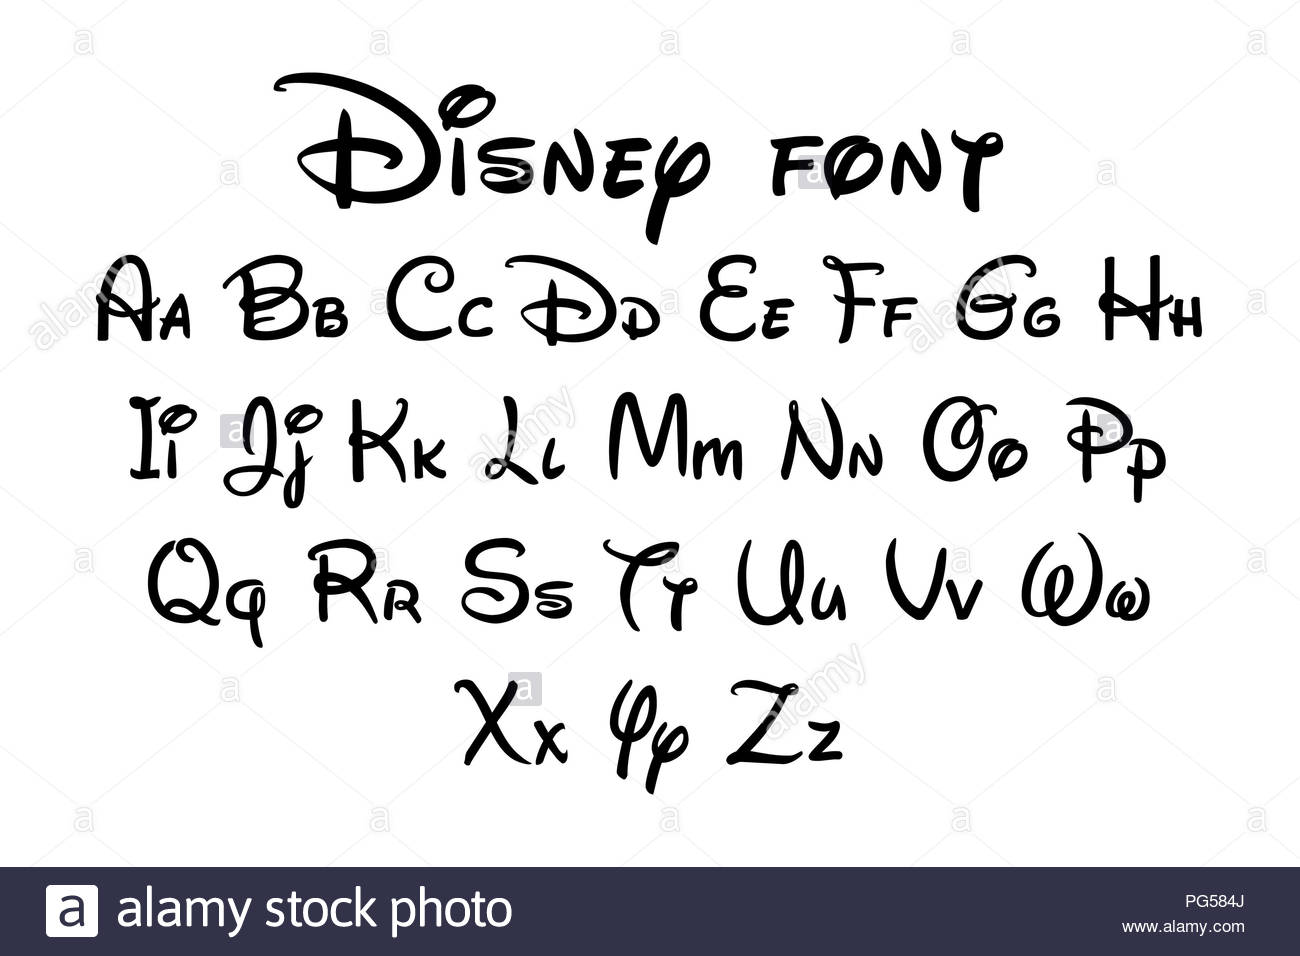 disney letter font disney font alphabet stock photo 216475074 alamy 2602